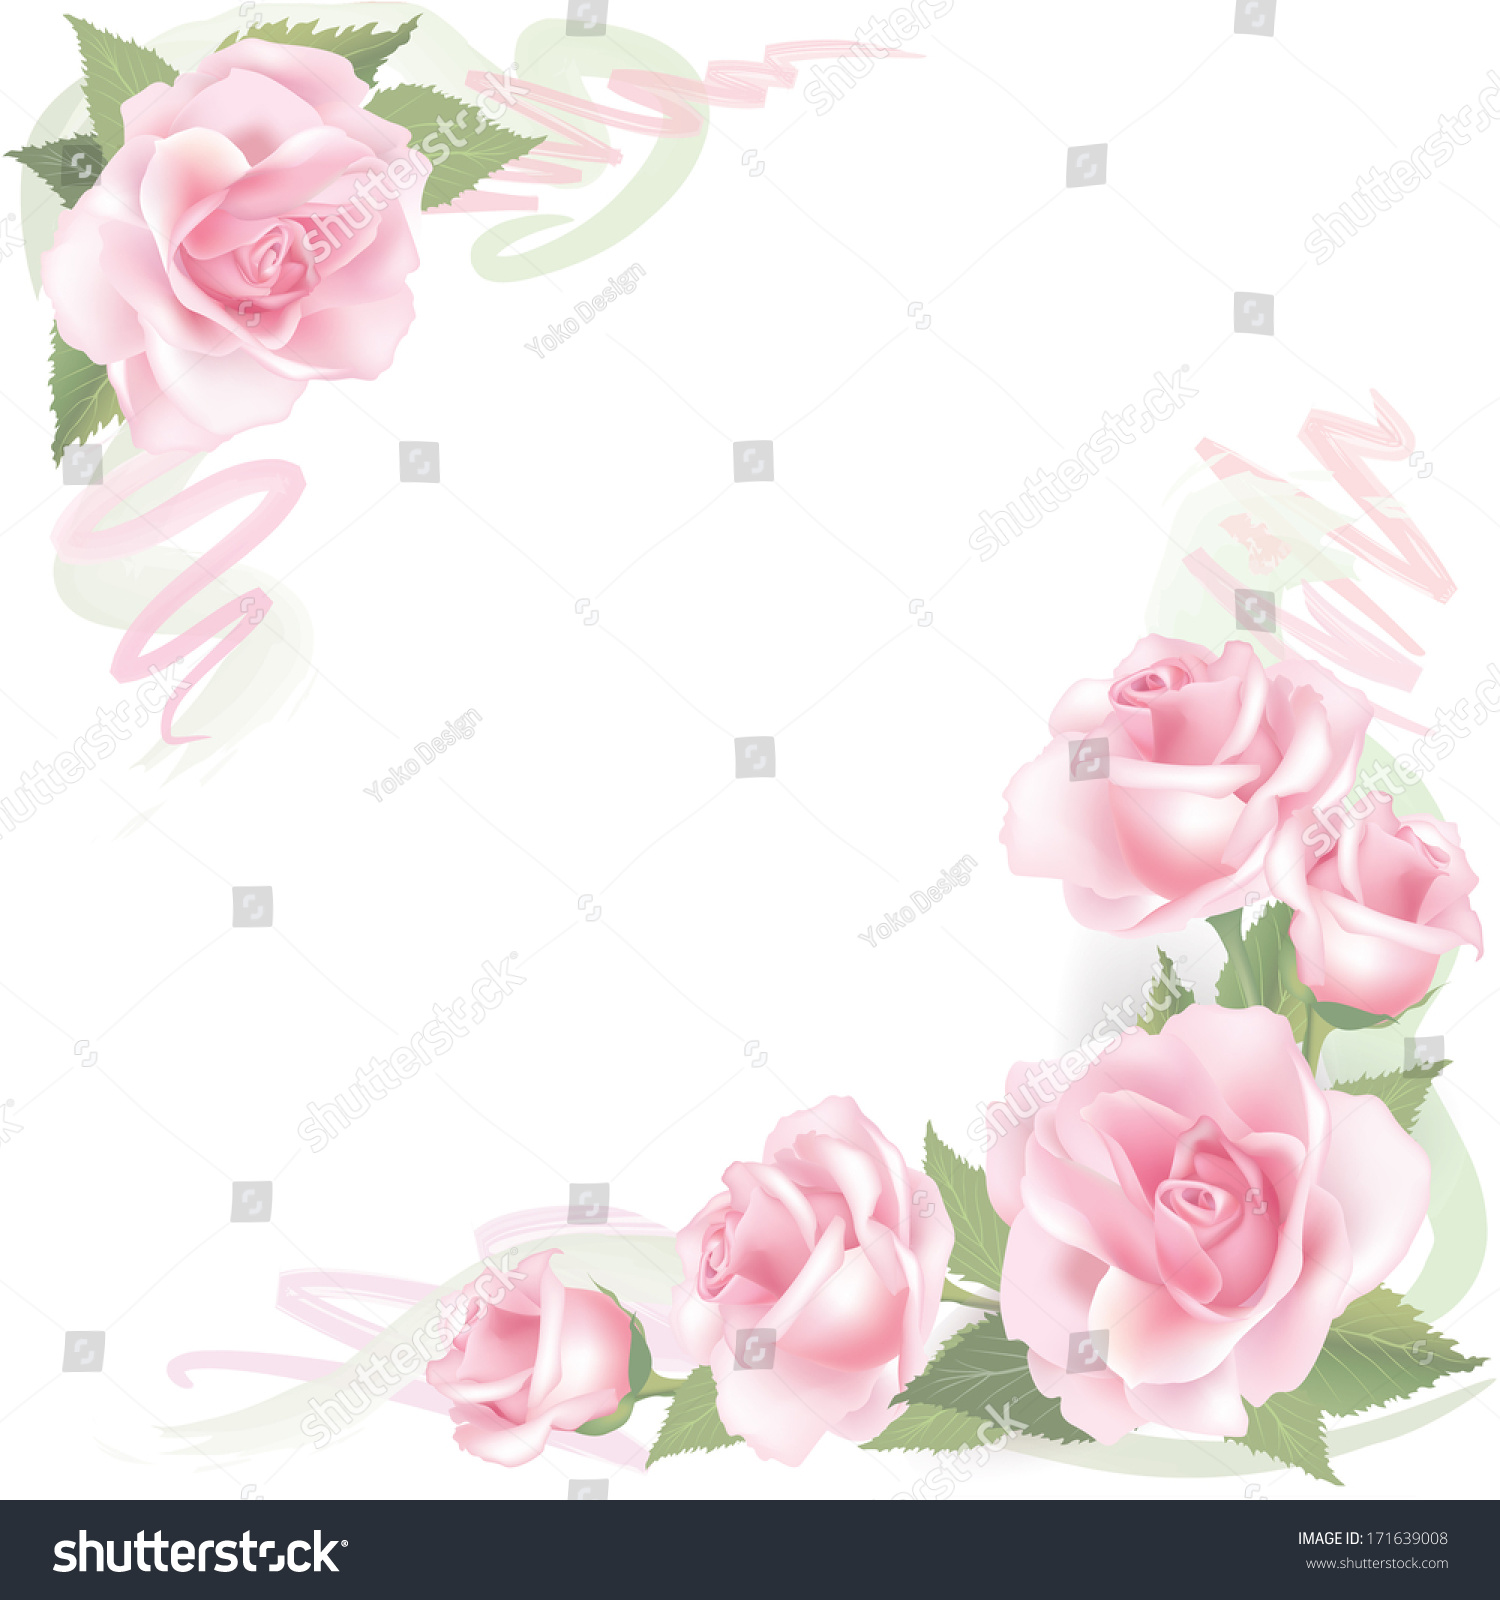 Flower rose background floral frame pink stock vector for Cadre floral mural